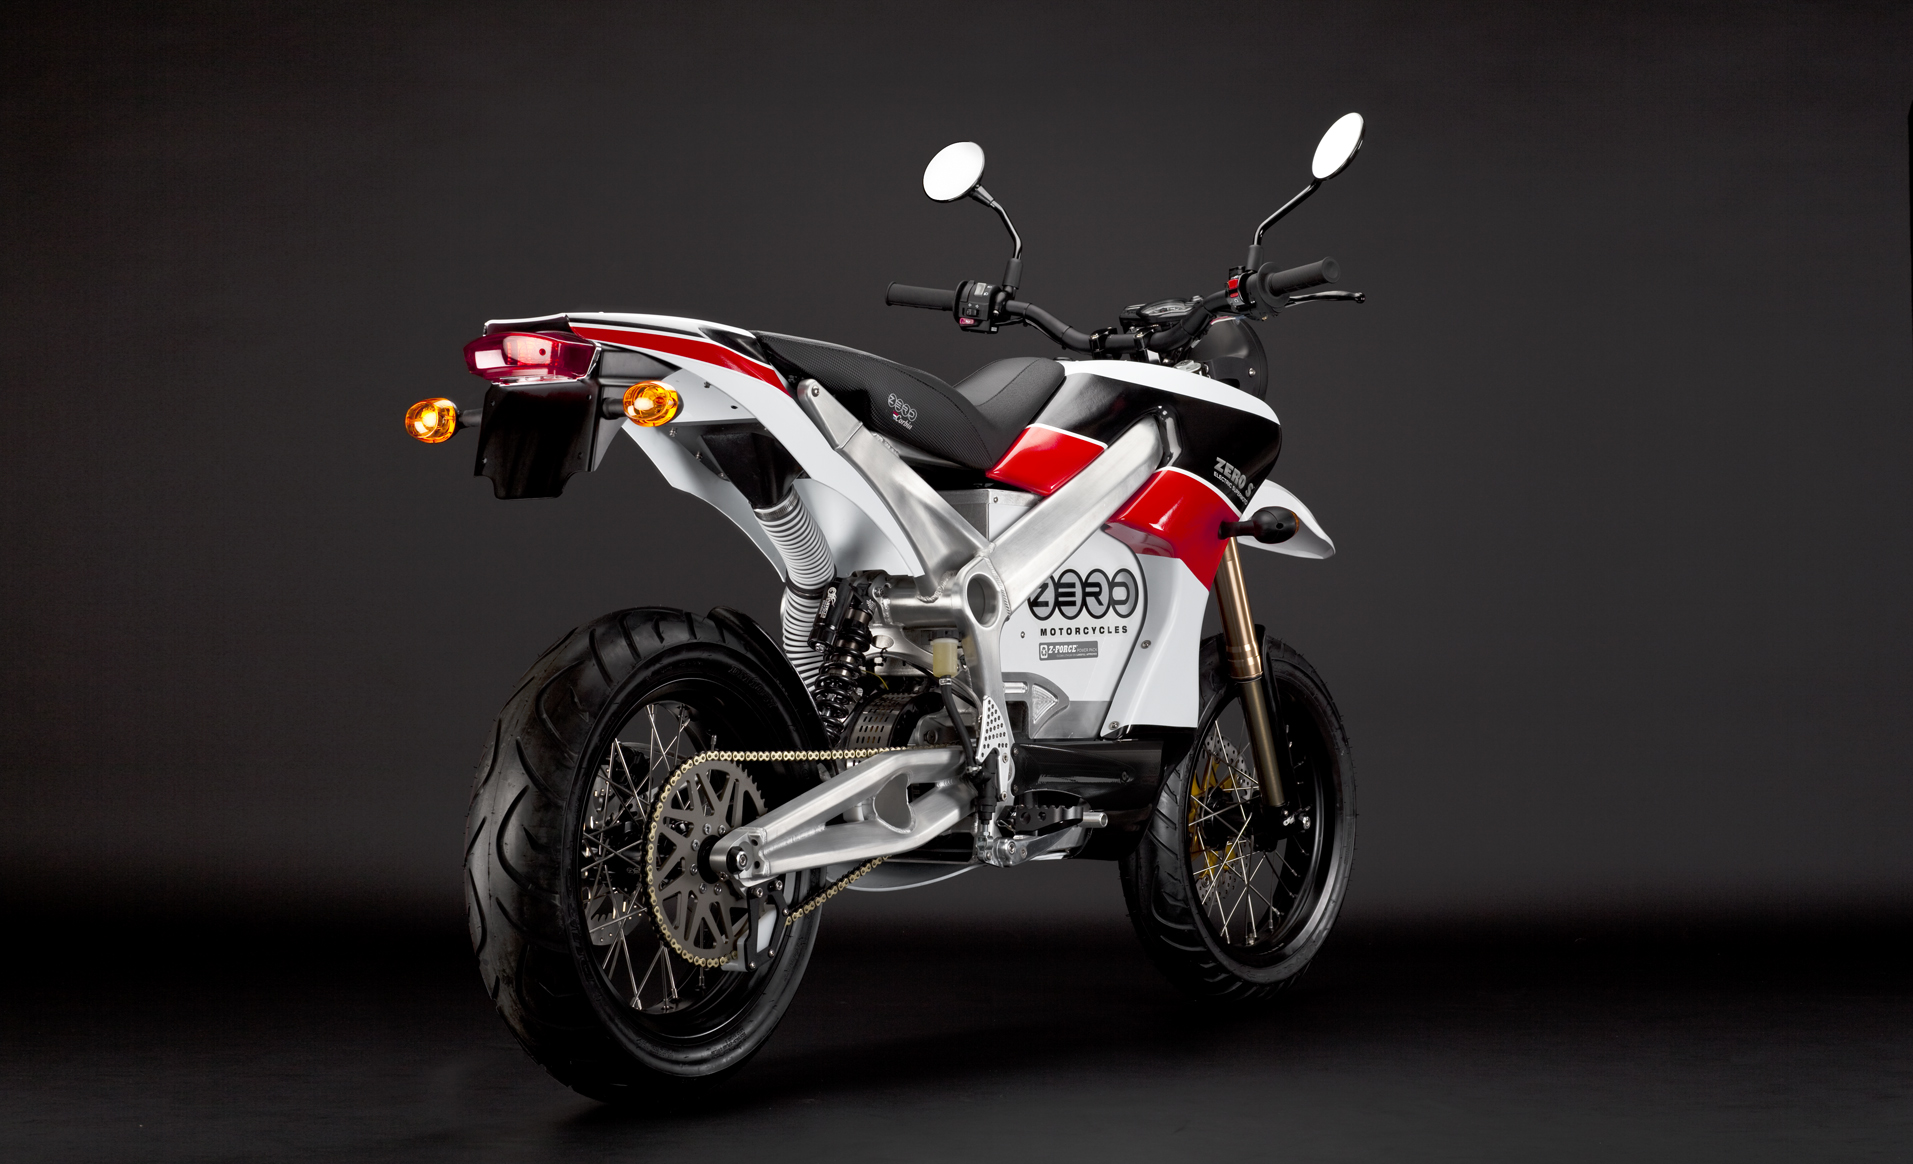 2010 Zero S Electric Motorcycle: Red Angle Rear